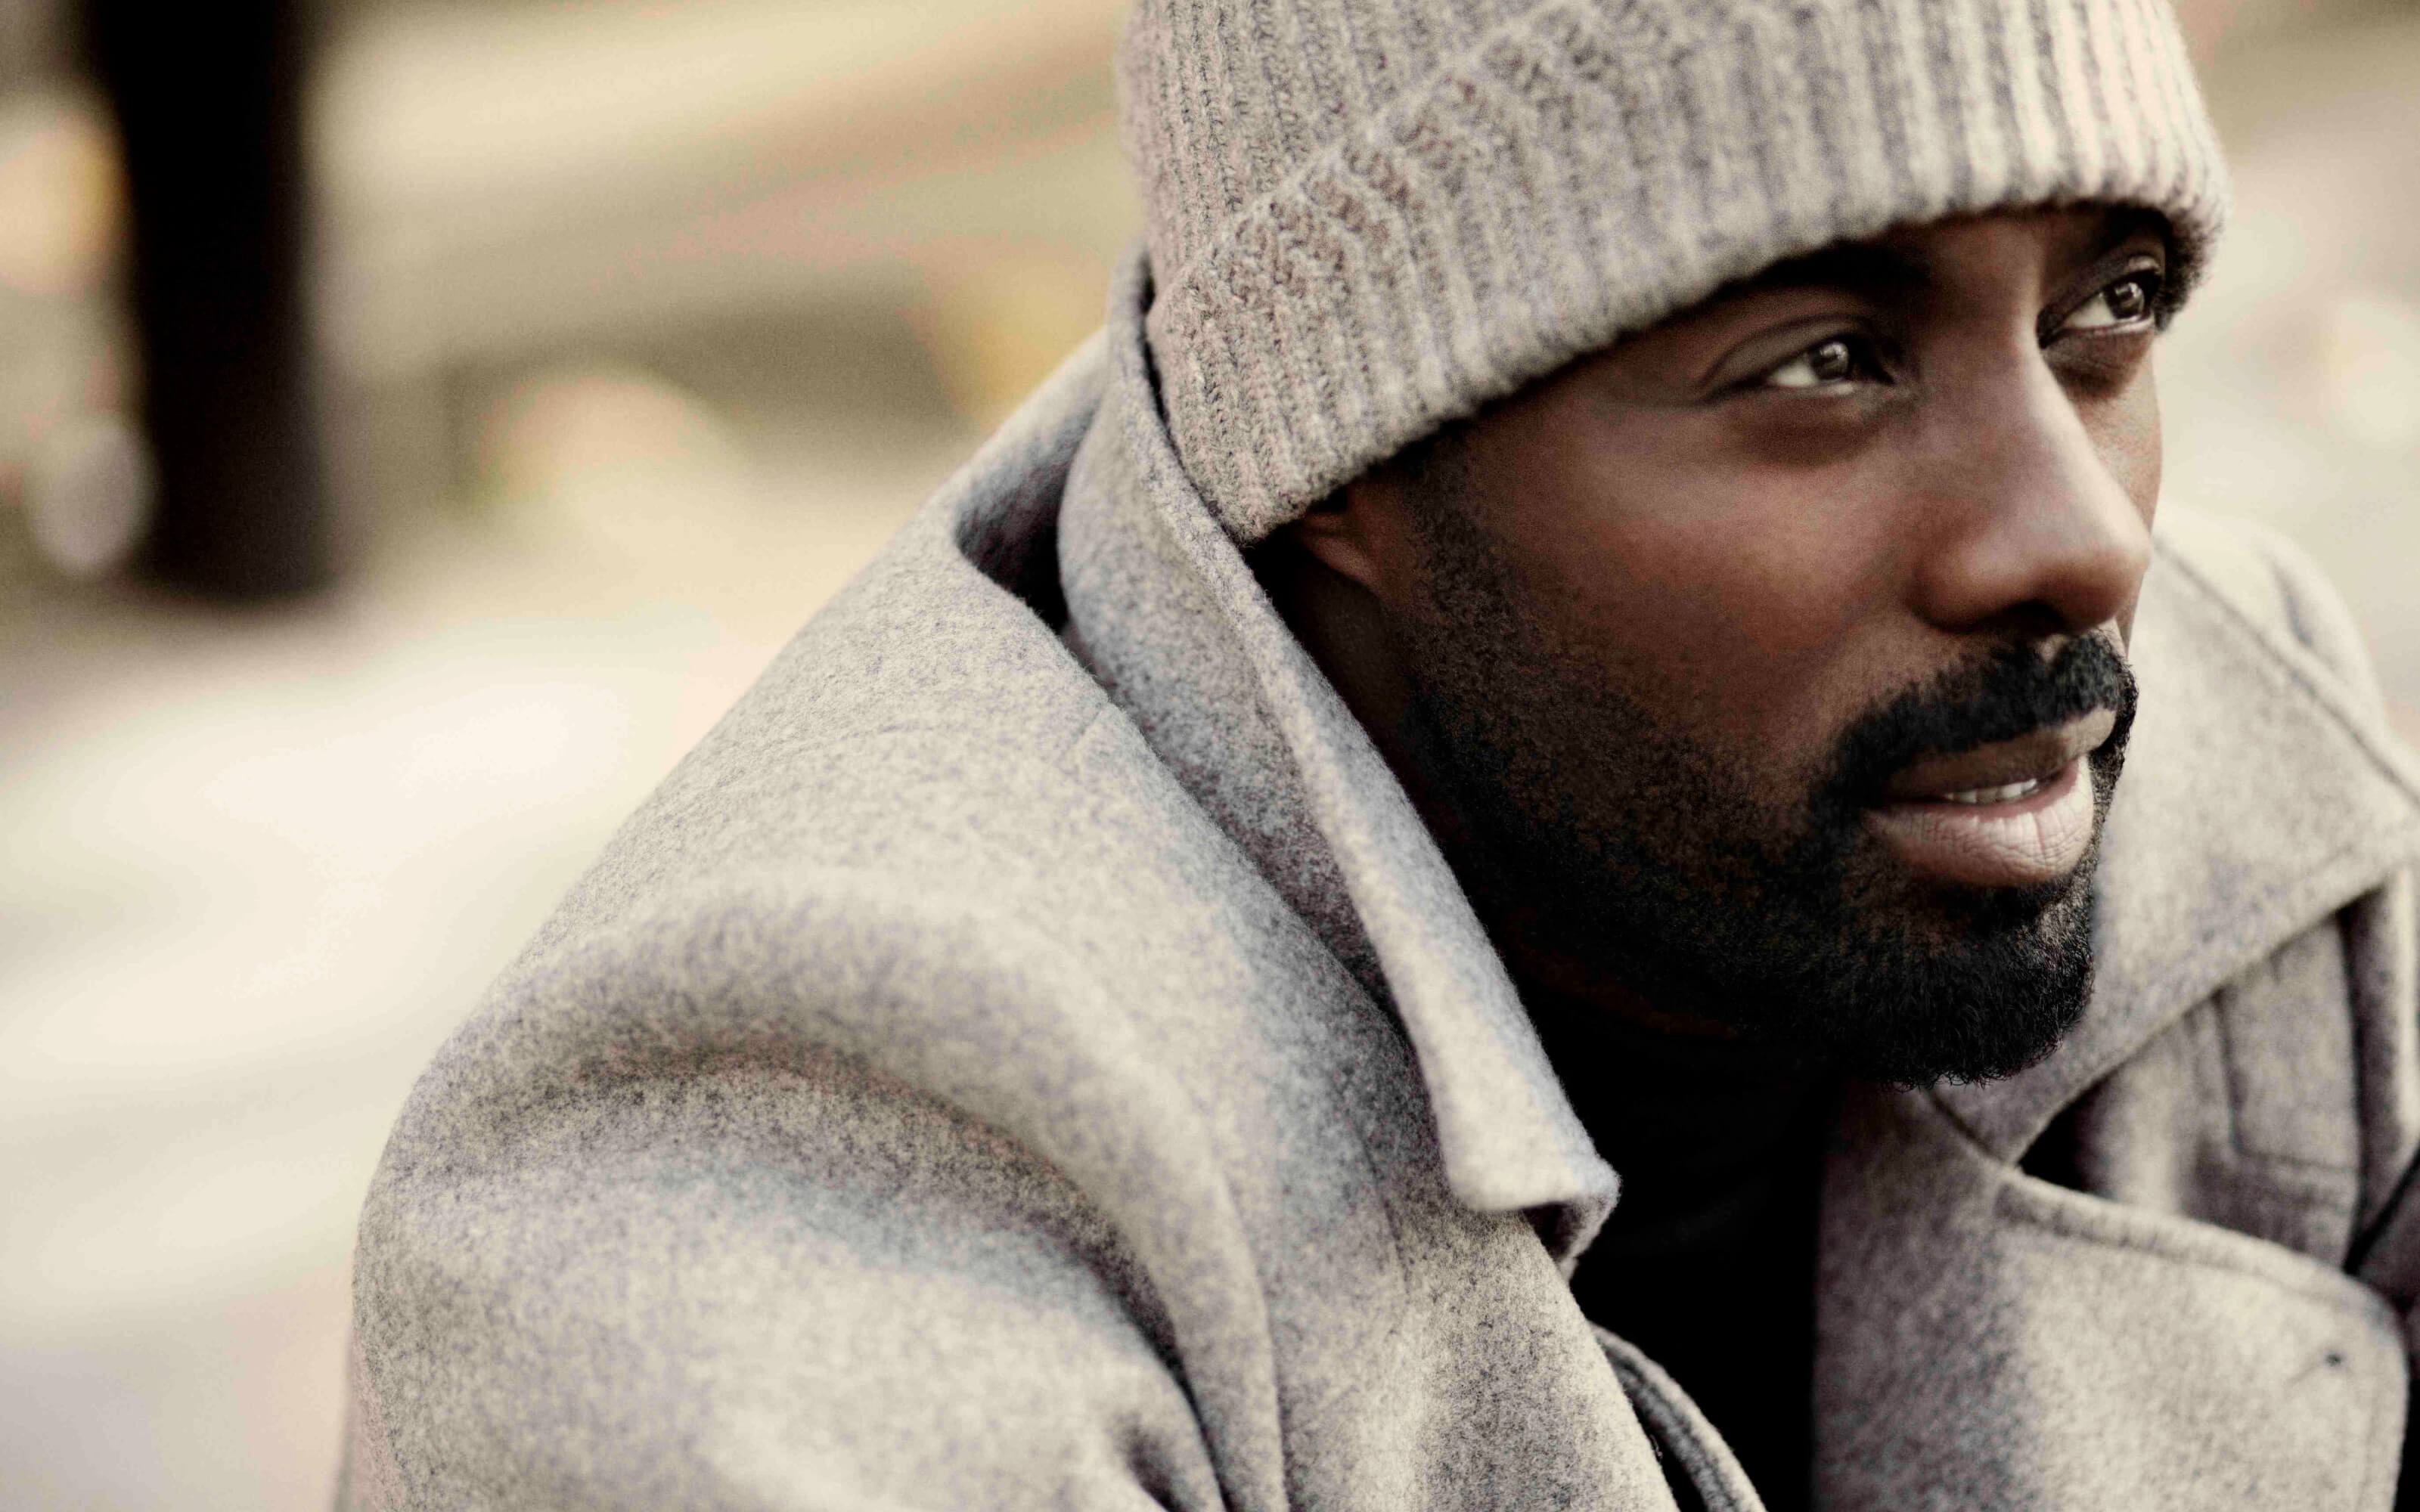 idris elba male actor hd wallpaper 2404